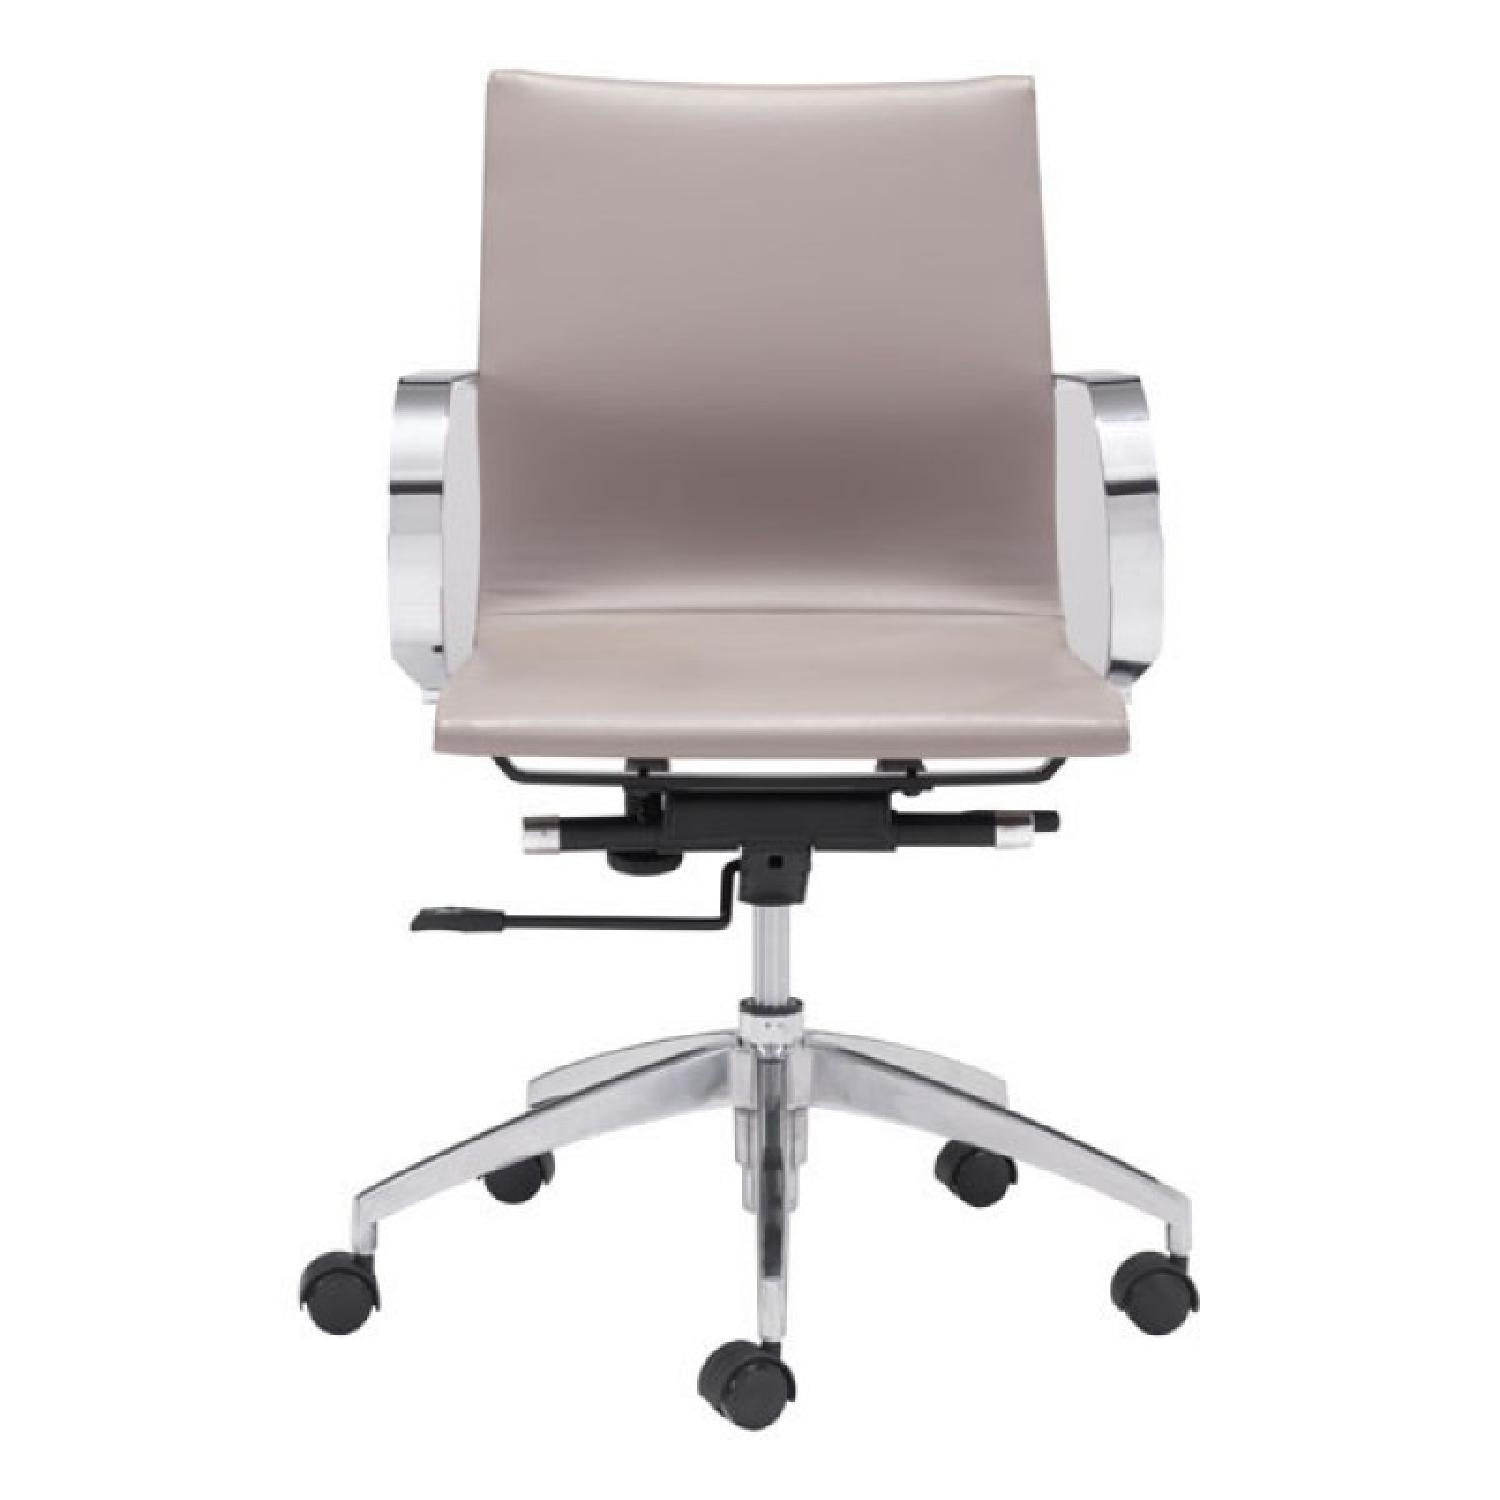 Low Back Office Chair Manhattan Home Design Taupe Low Back Office Chair